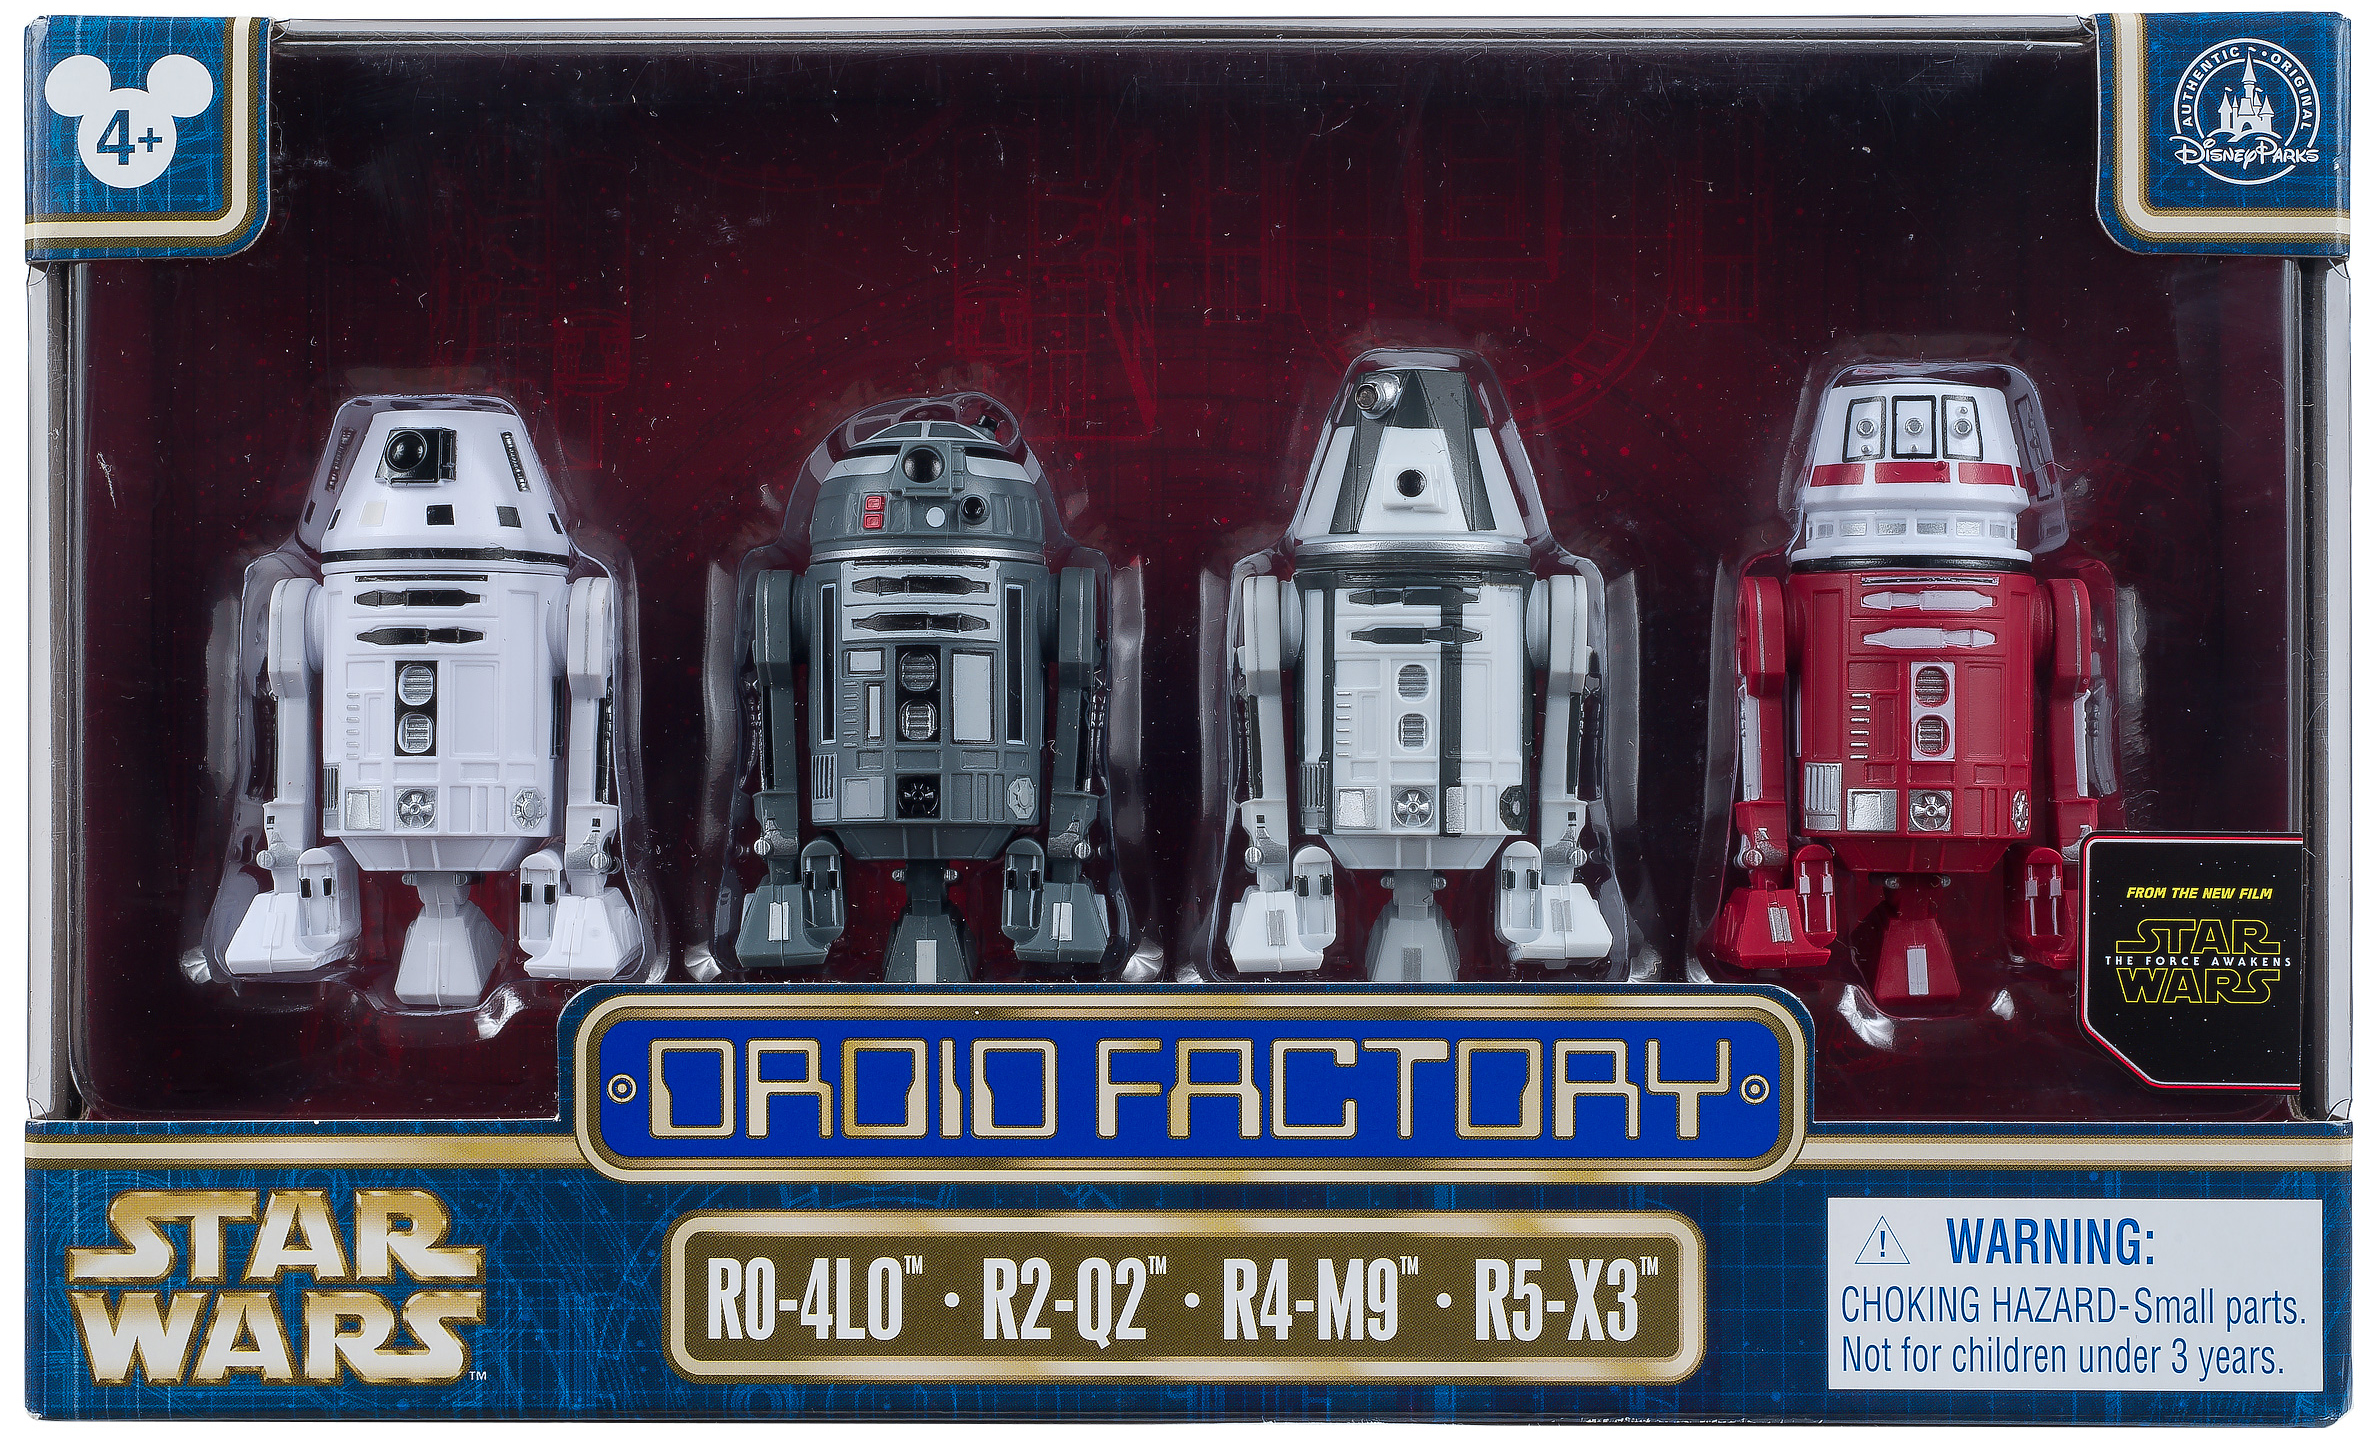 Droid Factory boxed set